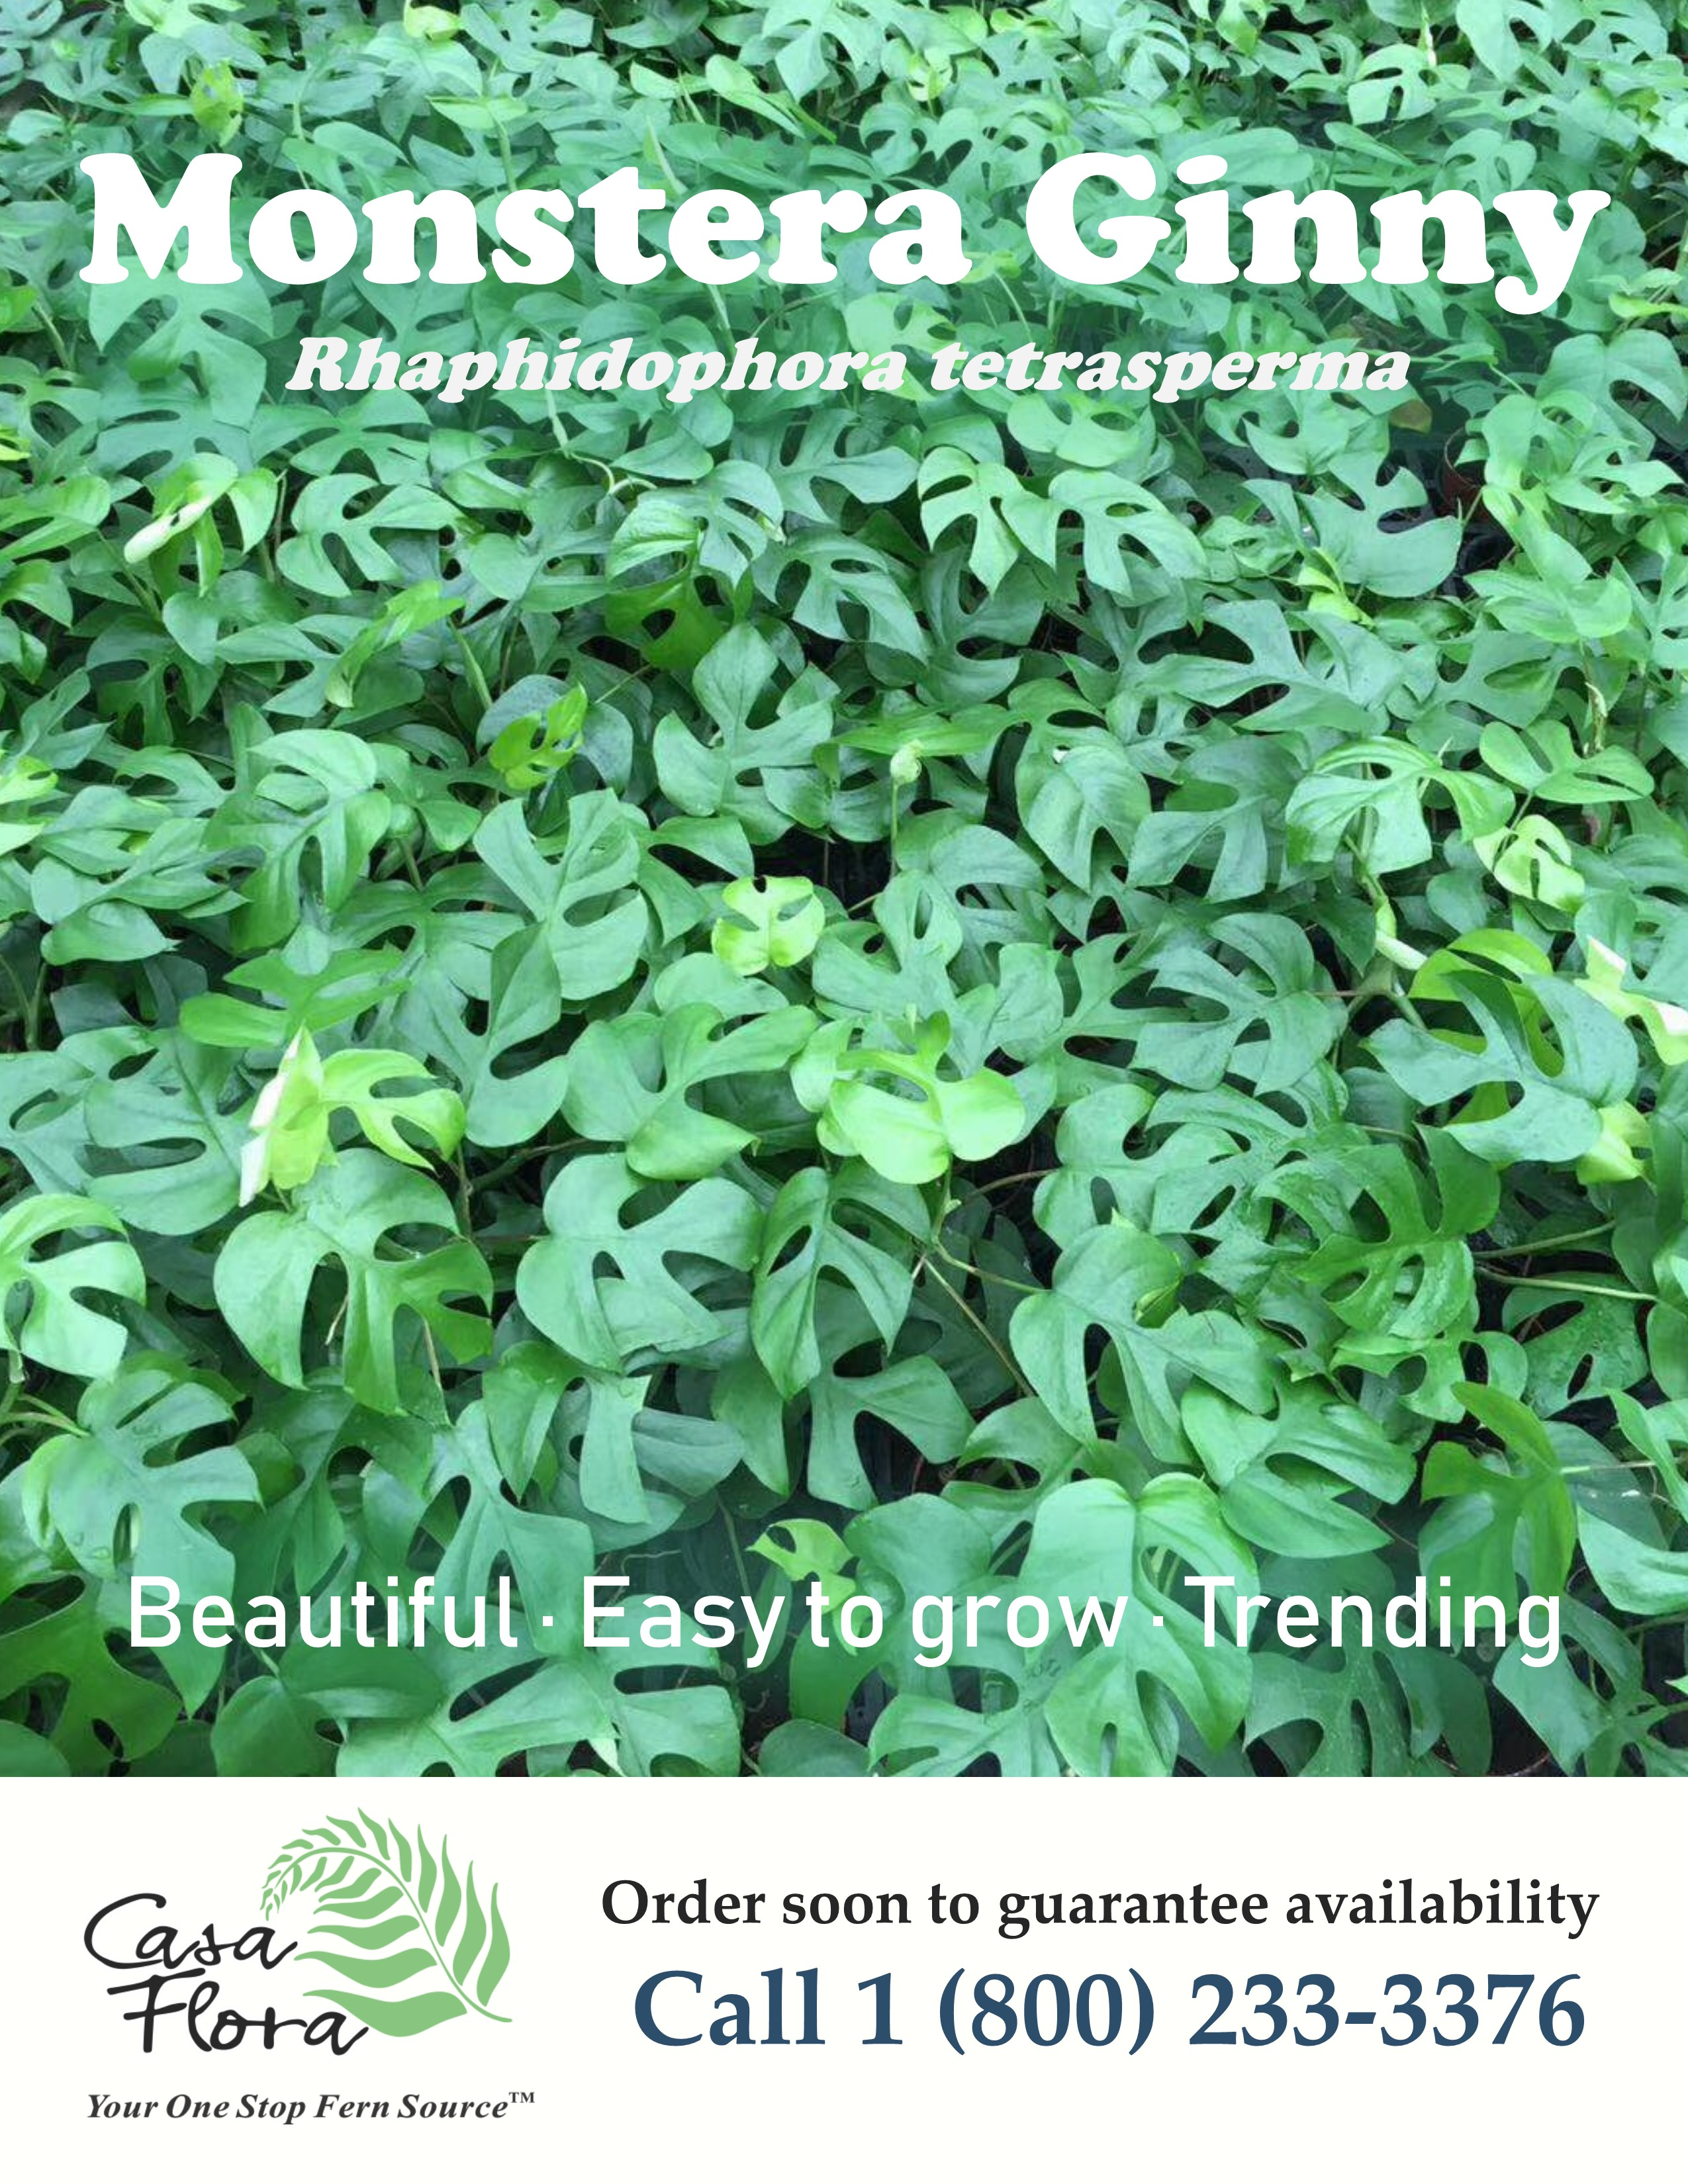 Monstera Ginny Flyer with the words beautiful, easy to grow, and trending